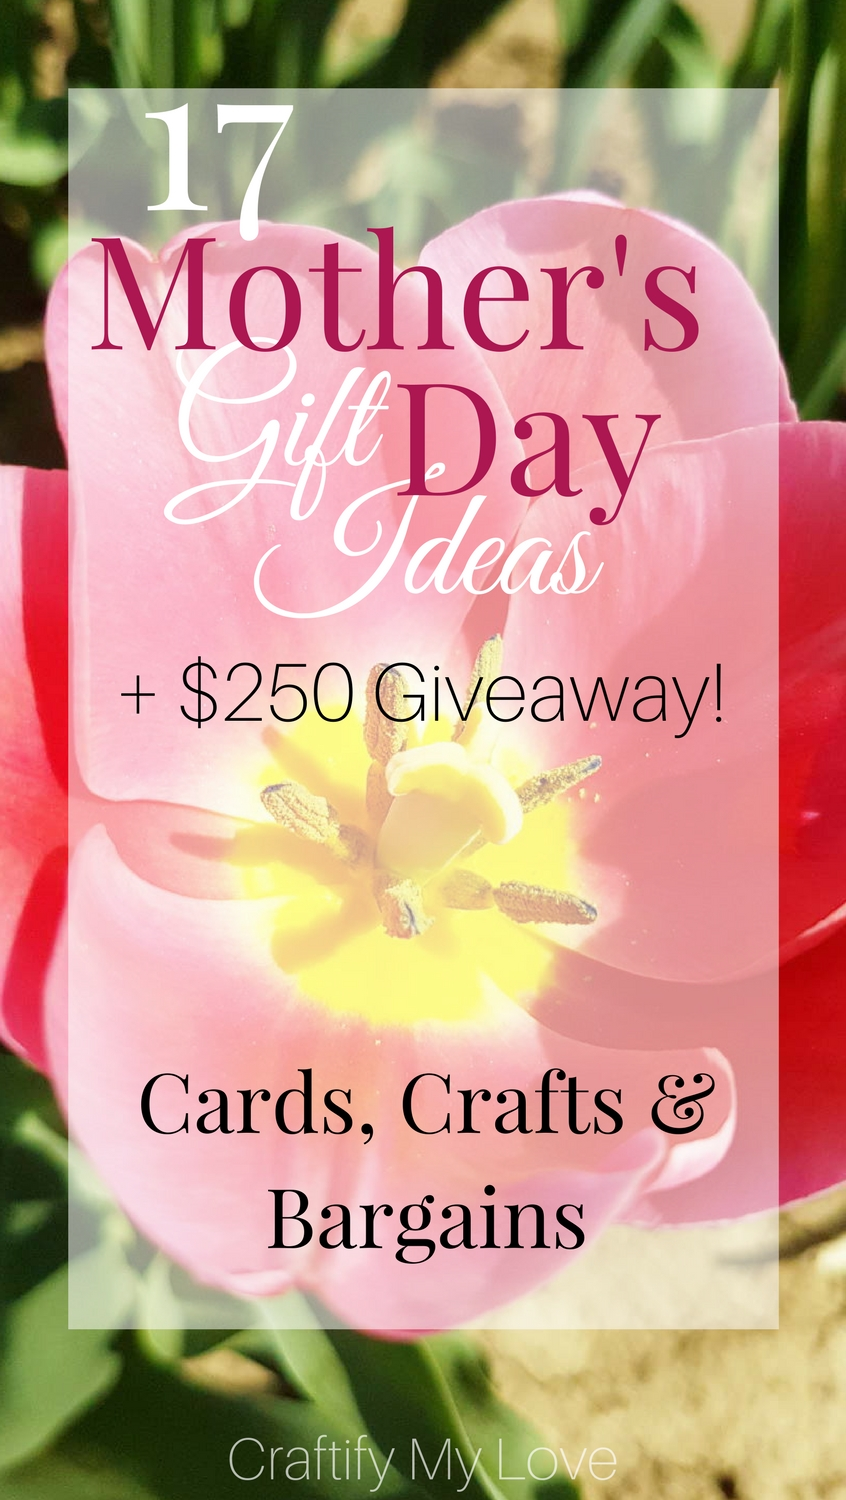 It doesn't matter if you want to DIY something for your mom or want to get her something extraordinary for a bargain. You'll find it in this epic Mother's Day Gift Guide. Also, don't miss out on a chance to win $ 250 in this Mother's Day Giveaway | #giveaway #mothersday #giftguide #diy #cardmaking #crafts #shoppingideas